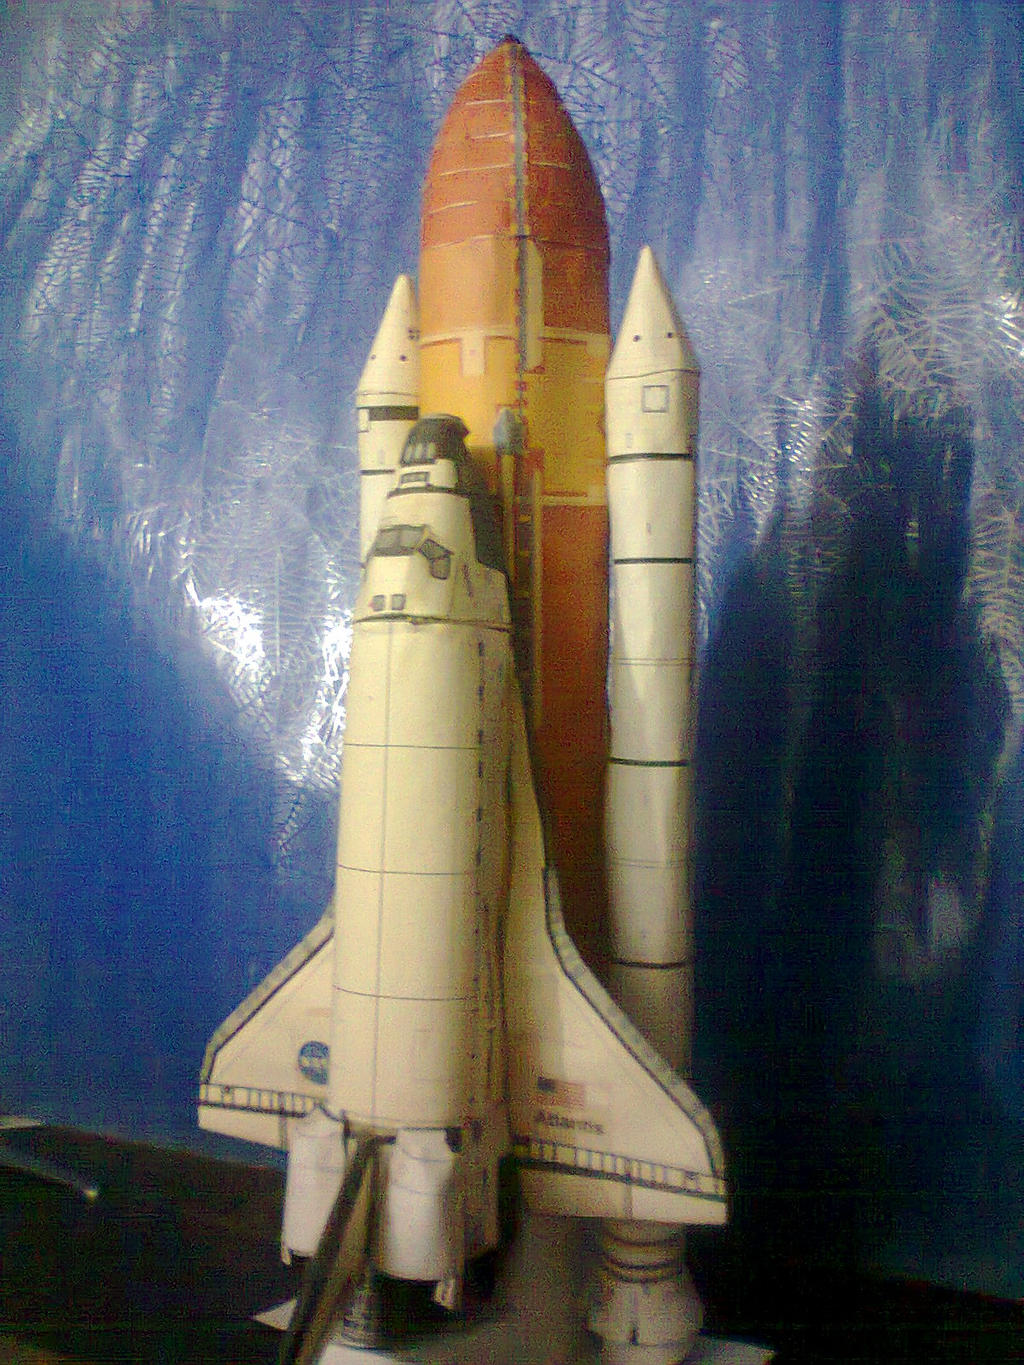 atlantis space shuttle papercraft - photo #7